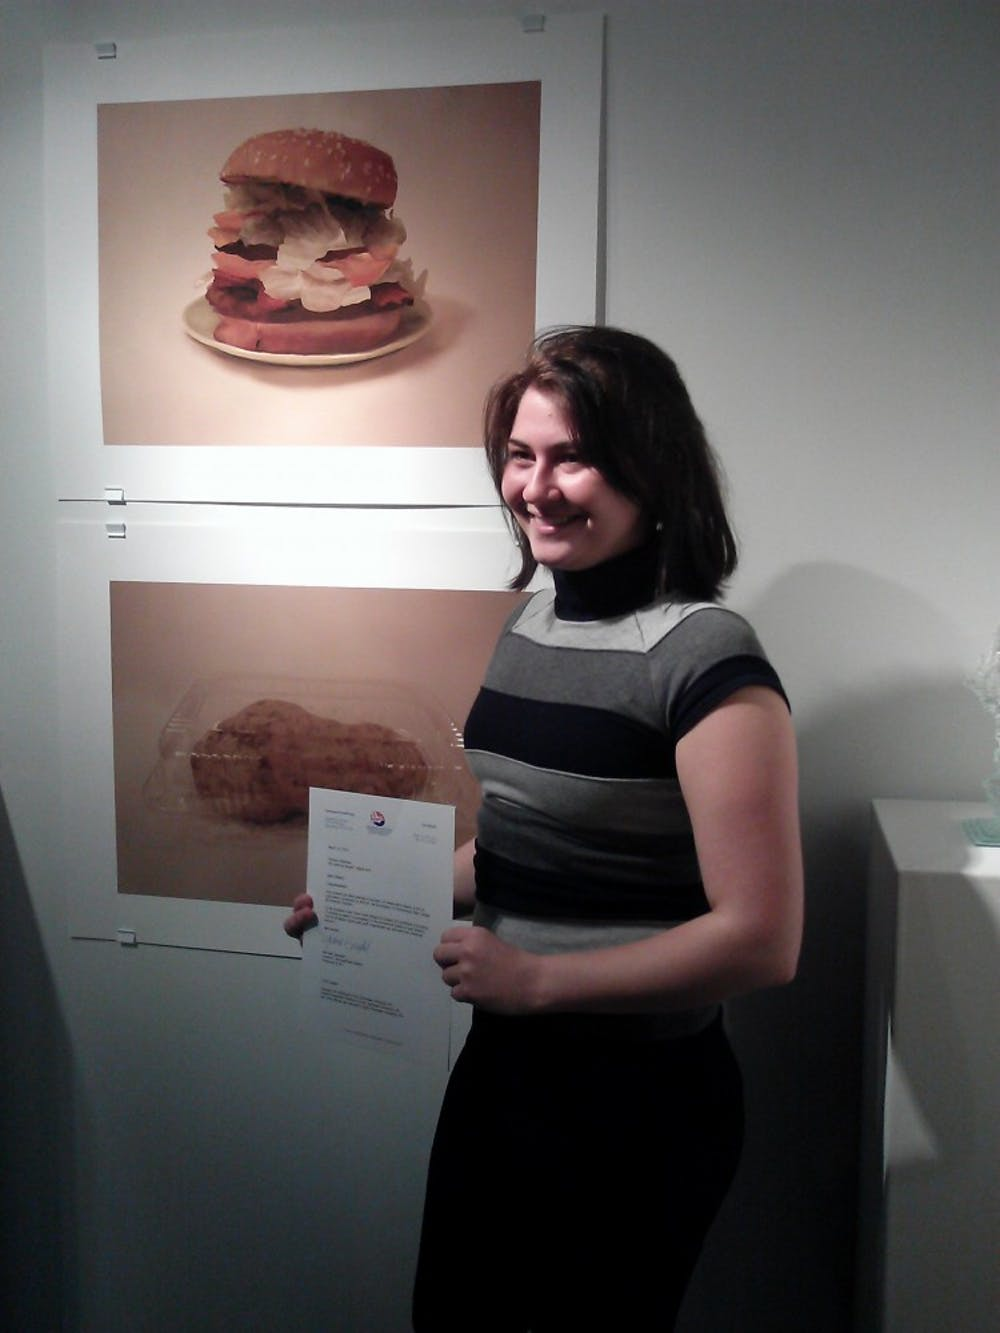 Student art so good you'll want to eat it